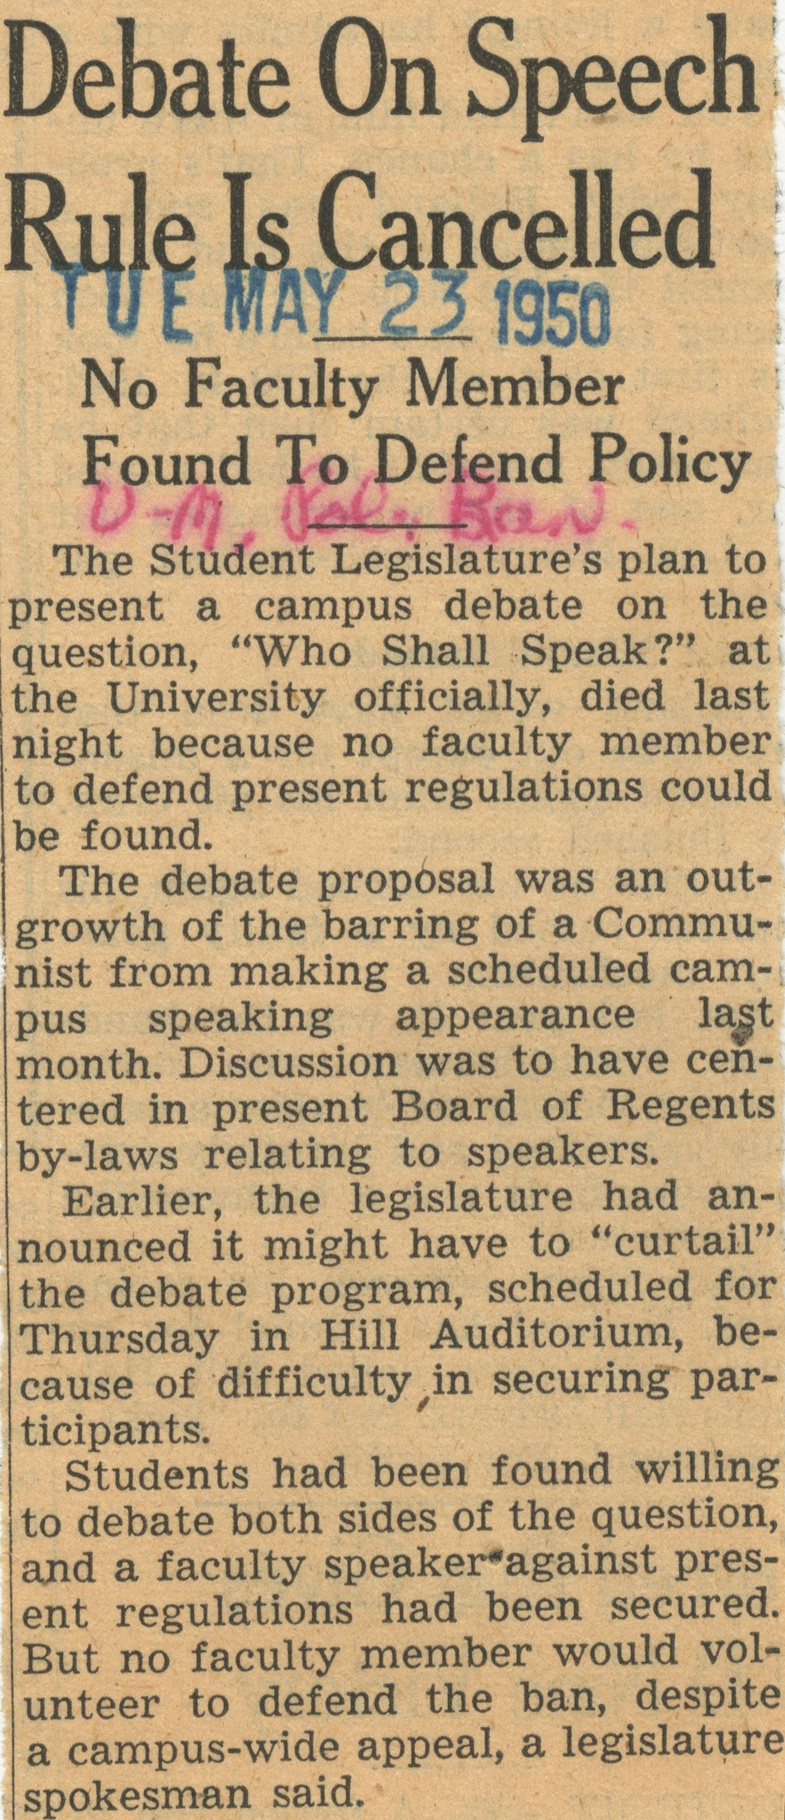 Debate On Speech Rule Is Cancelled: No Faculty Member Found To Defend Policy image